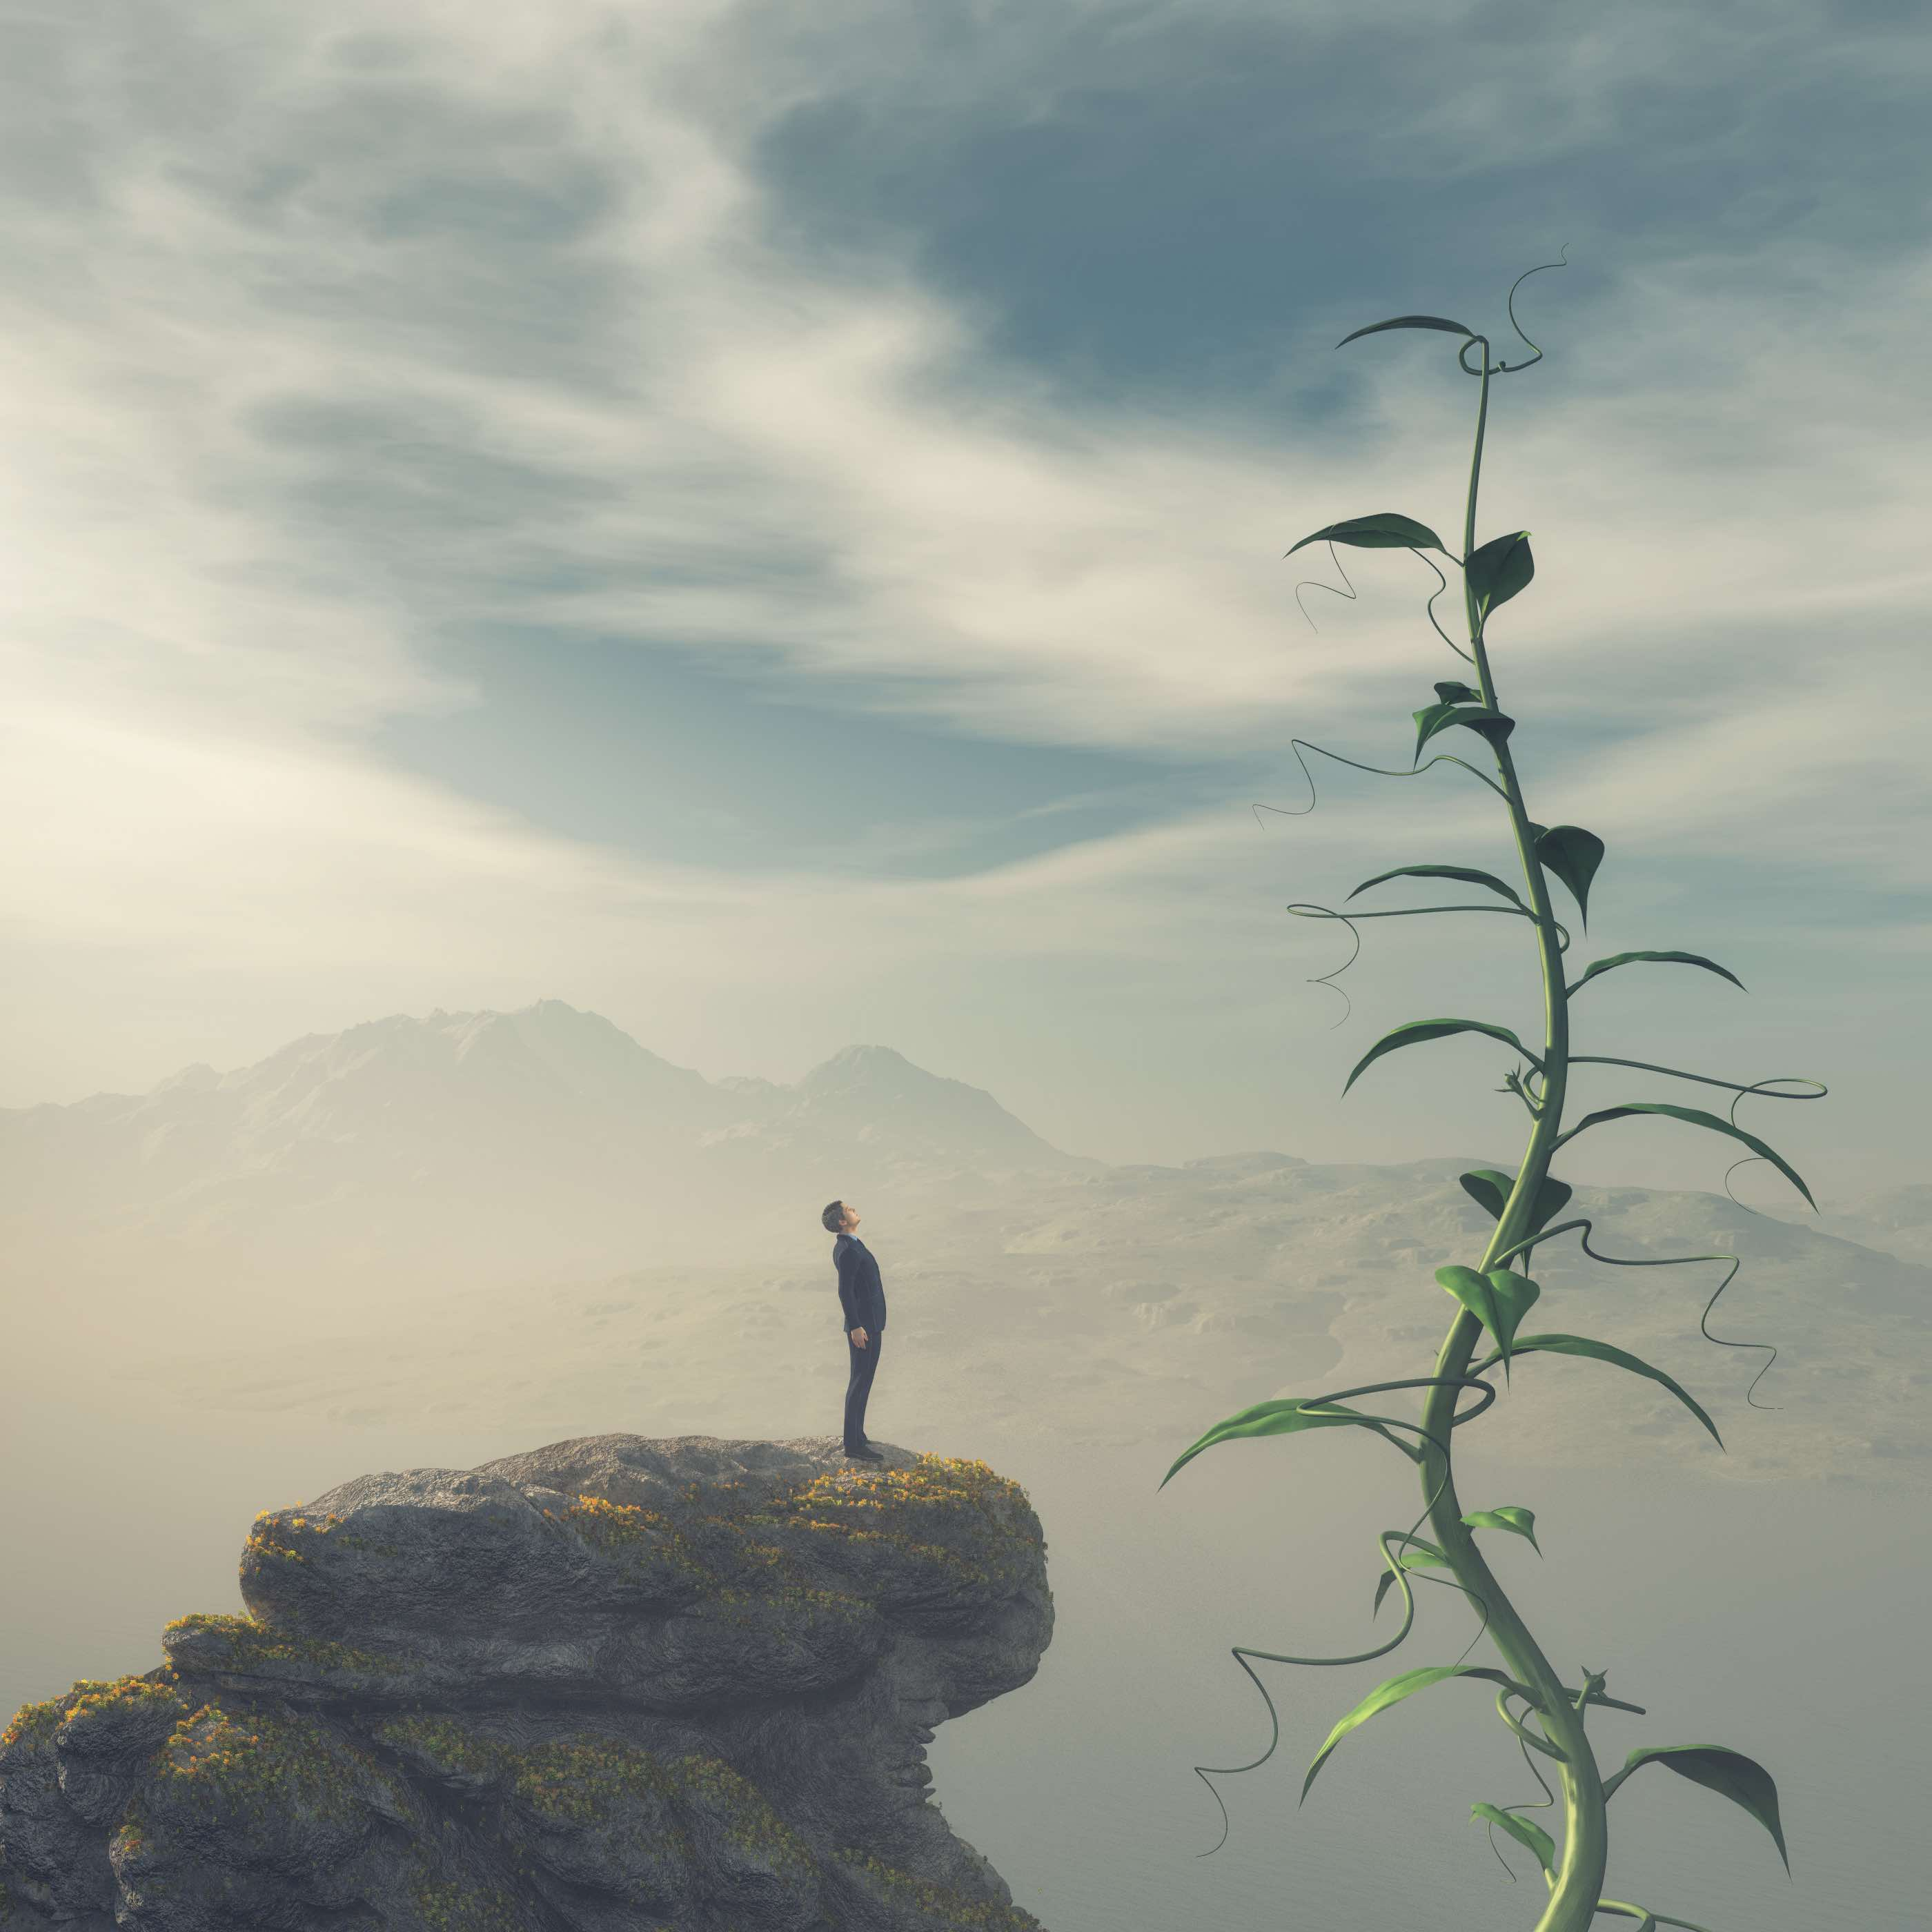 Man standing on the edge of a cliff admiring a big beanstalk. This is a 3d render illustration